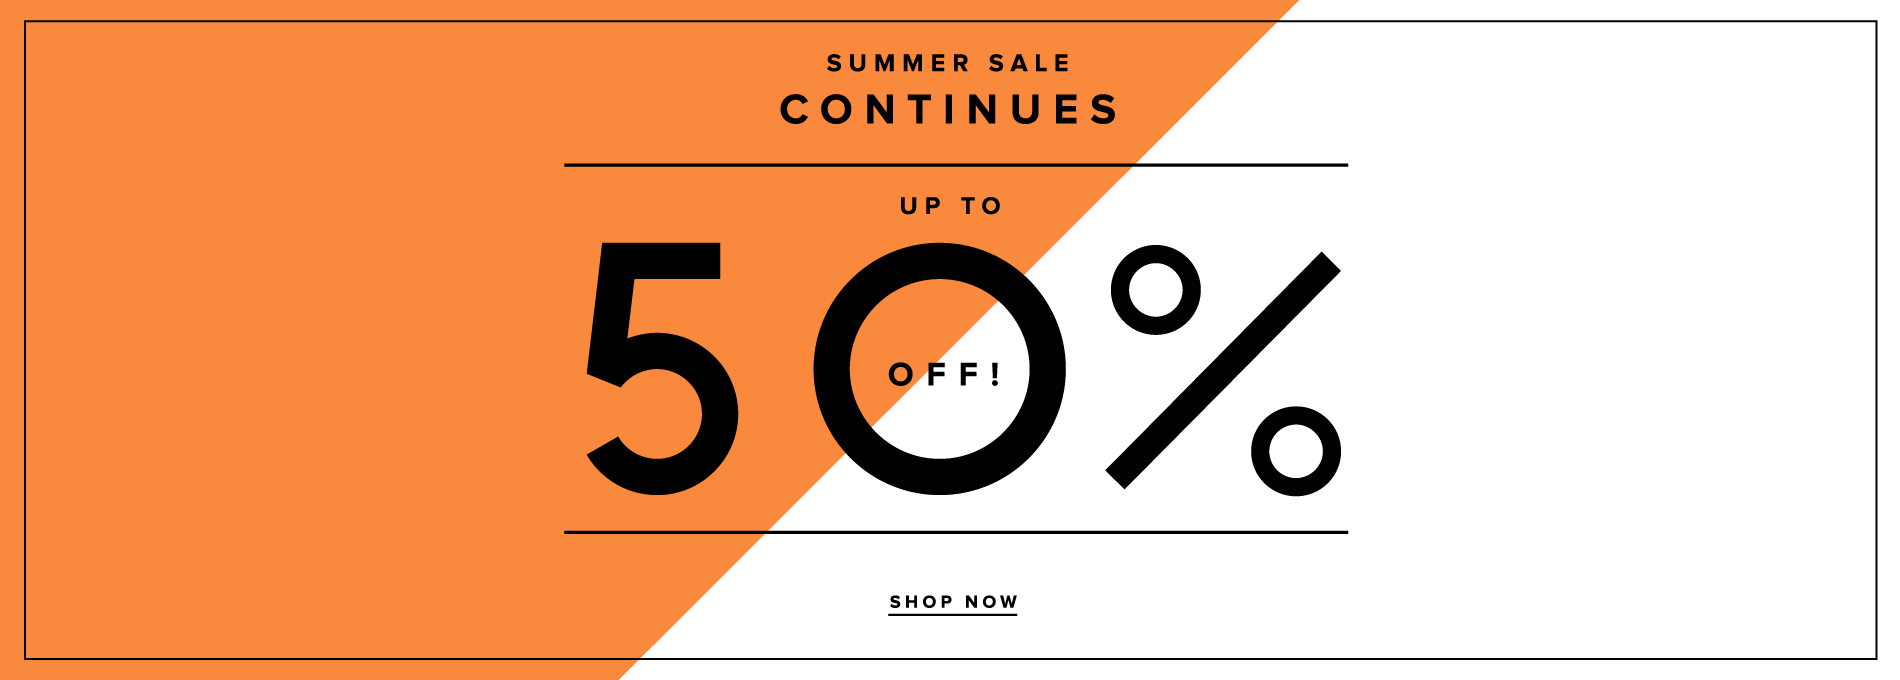 Suit Direct Suit Direct: Summer Sale up to 50% off men suits, shirts, blazers and coats